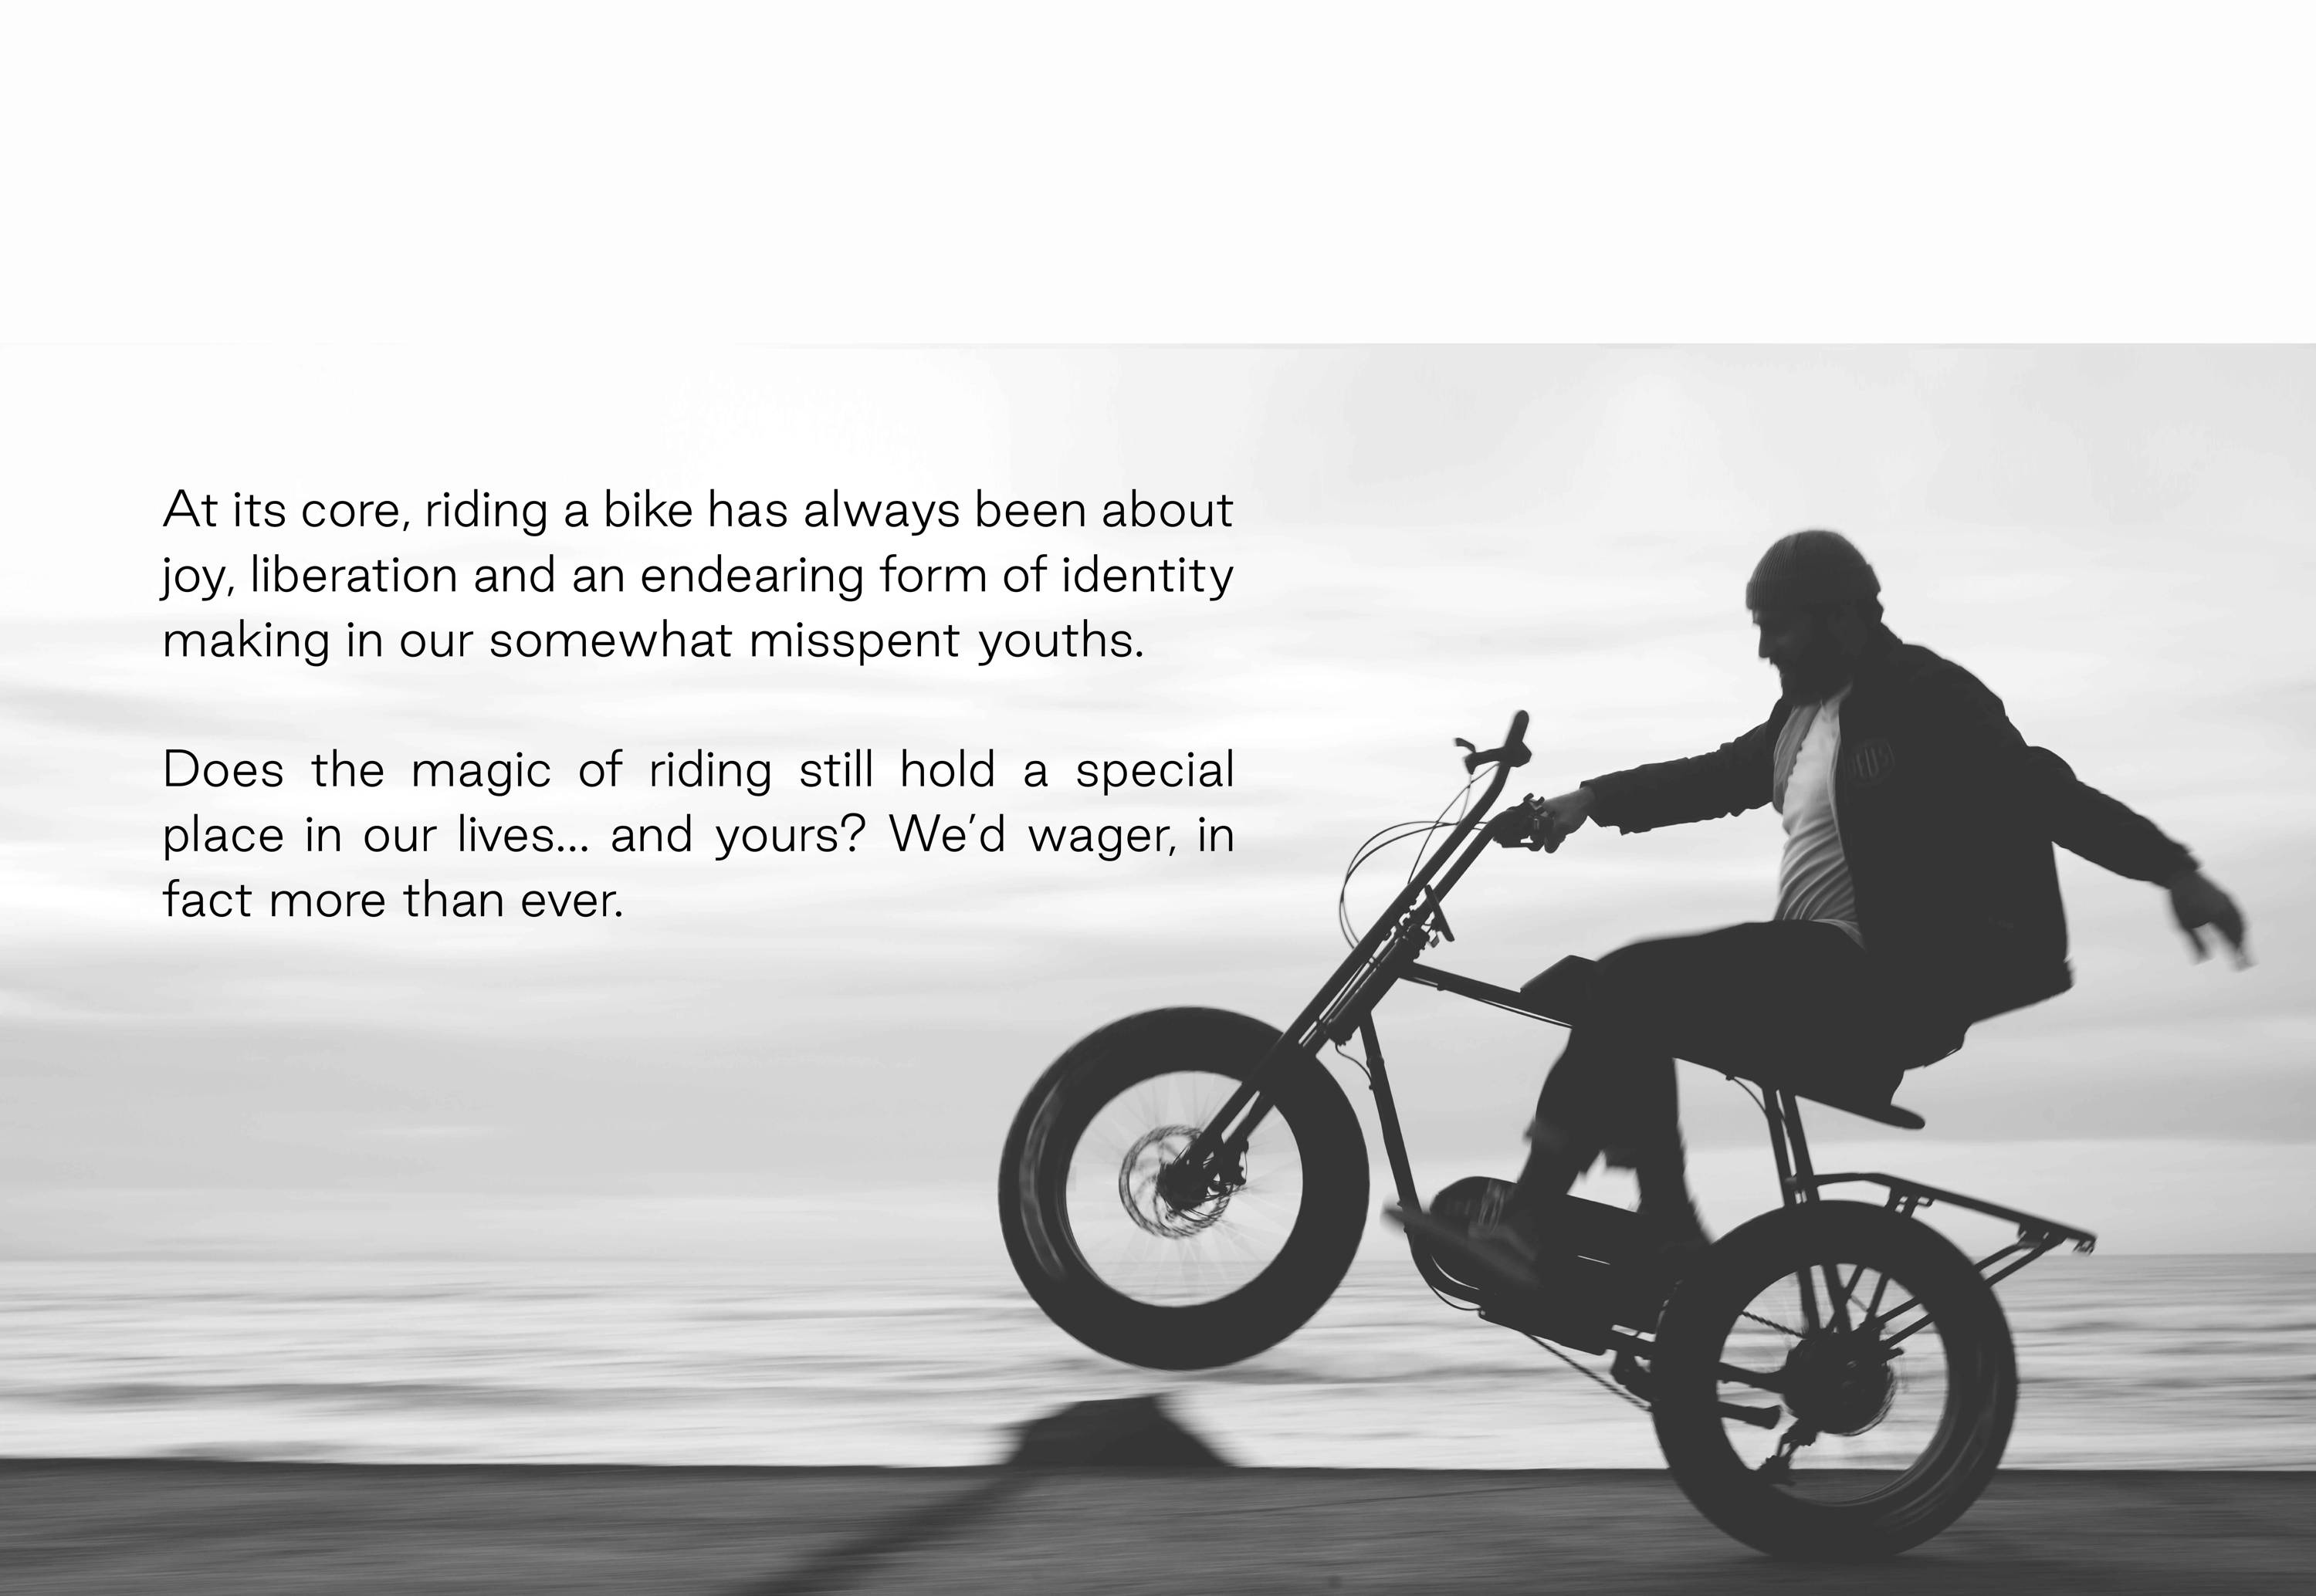 At its core, riding a bike has always been about joy, liberation and an endearing form of identity making in our somewhat misspent youths.  Does the magic of riding still hold a special place in our lives… and yours? We'd wager, in fact more than ever.